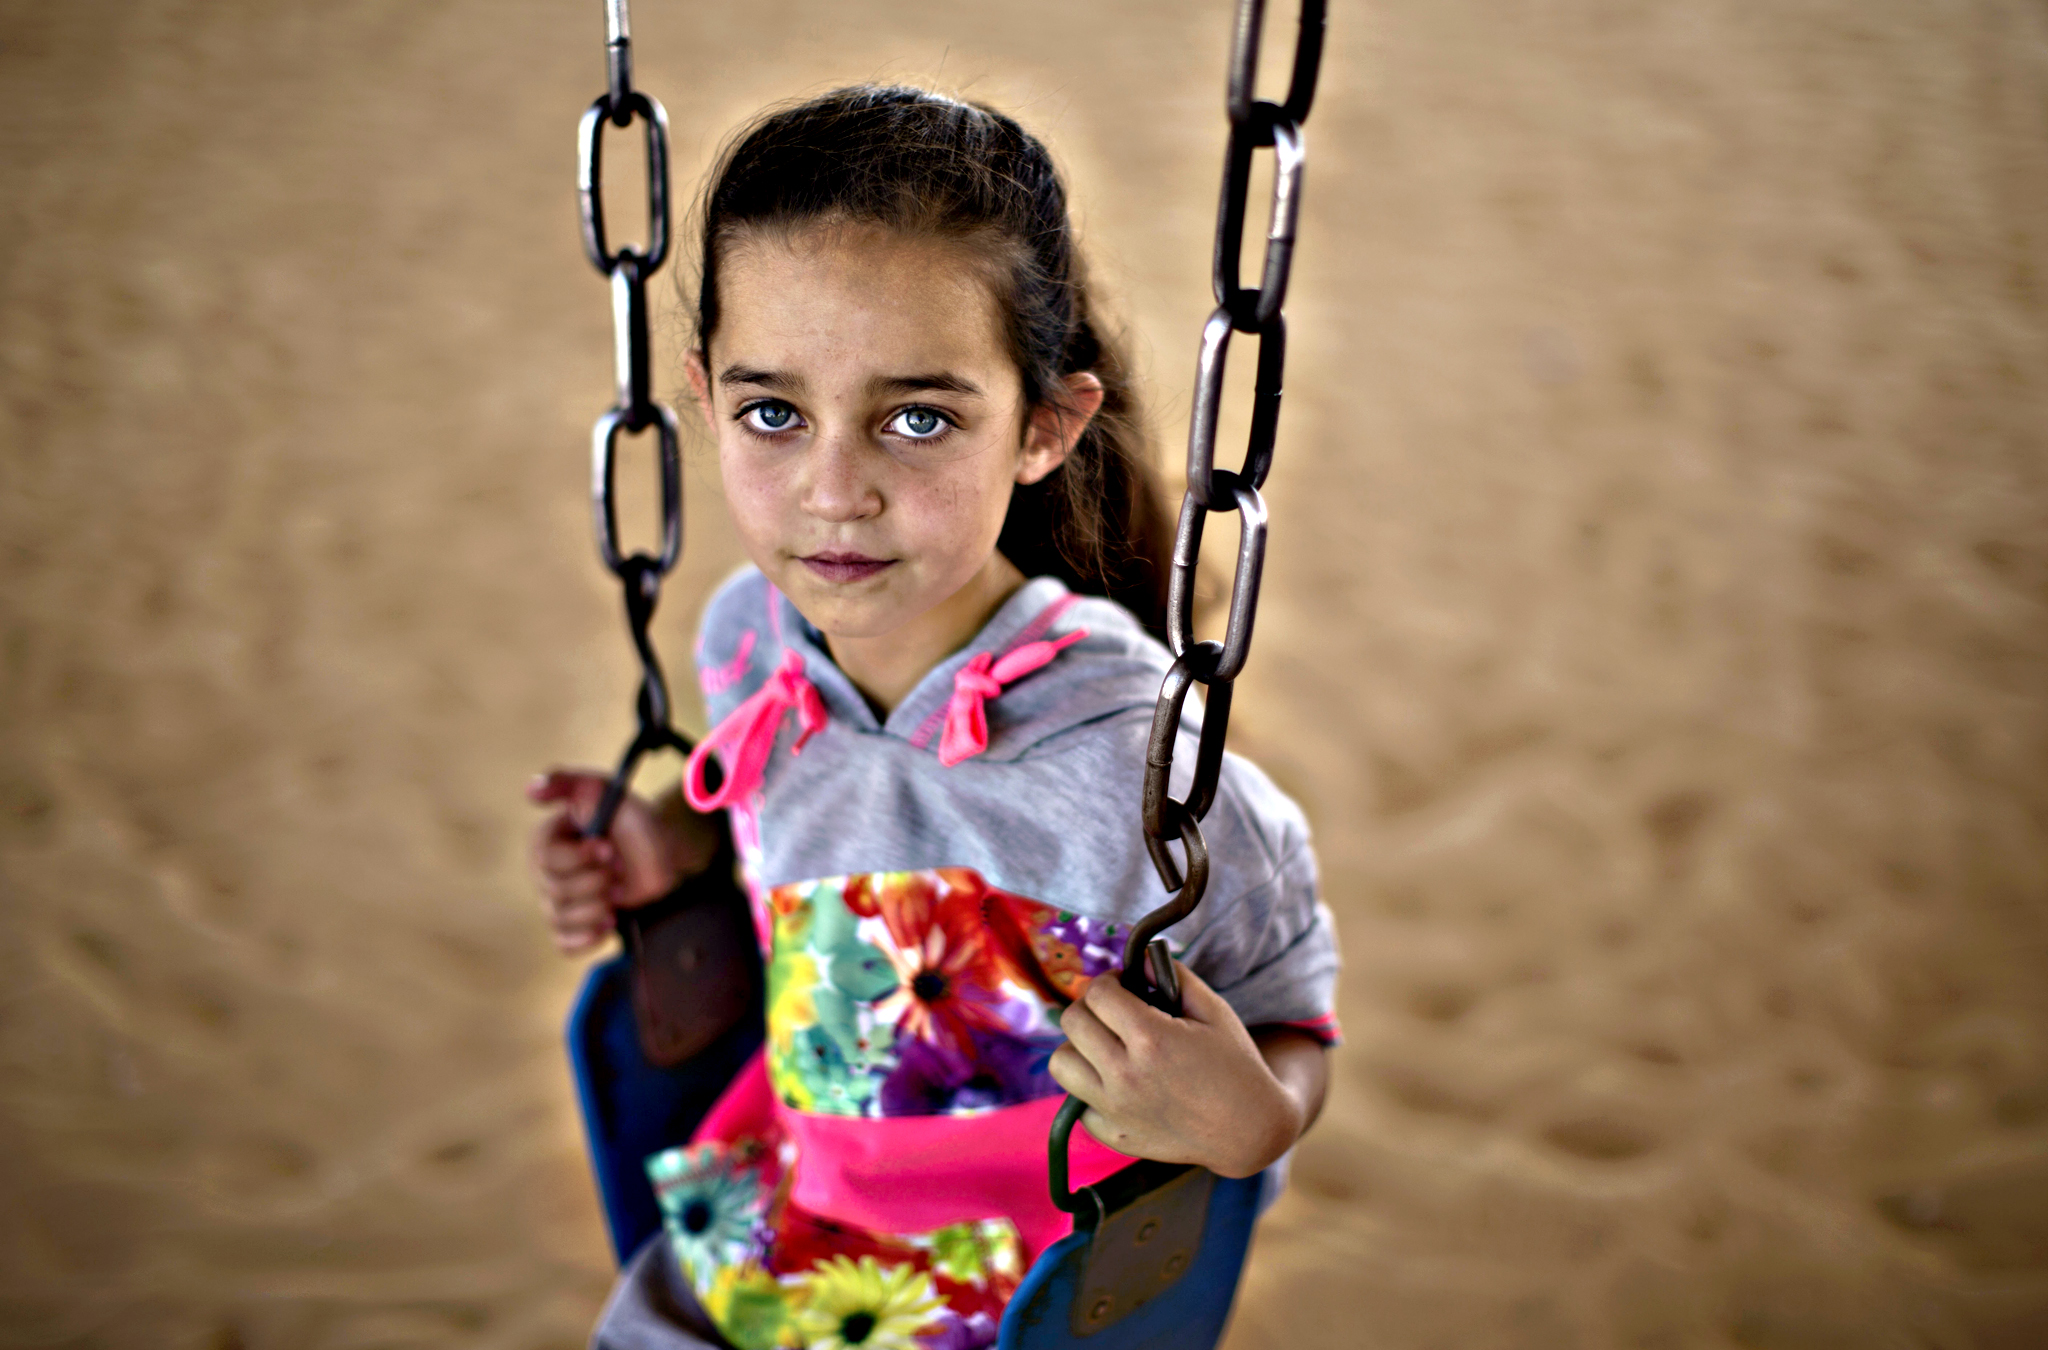 Syrian refugee Heba Ahmad, 7, pauses while playing on a swing with other children on the first day of the Eid al-Fitr holiday that marks the end of the holy fasting month of Ramadan at Zaatari refugee camp, in Mafraq, Jordan, Friday, July 17, 2015.